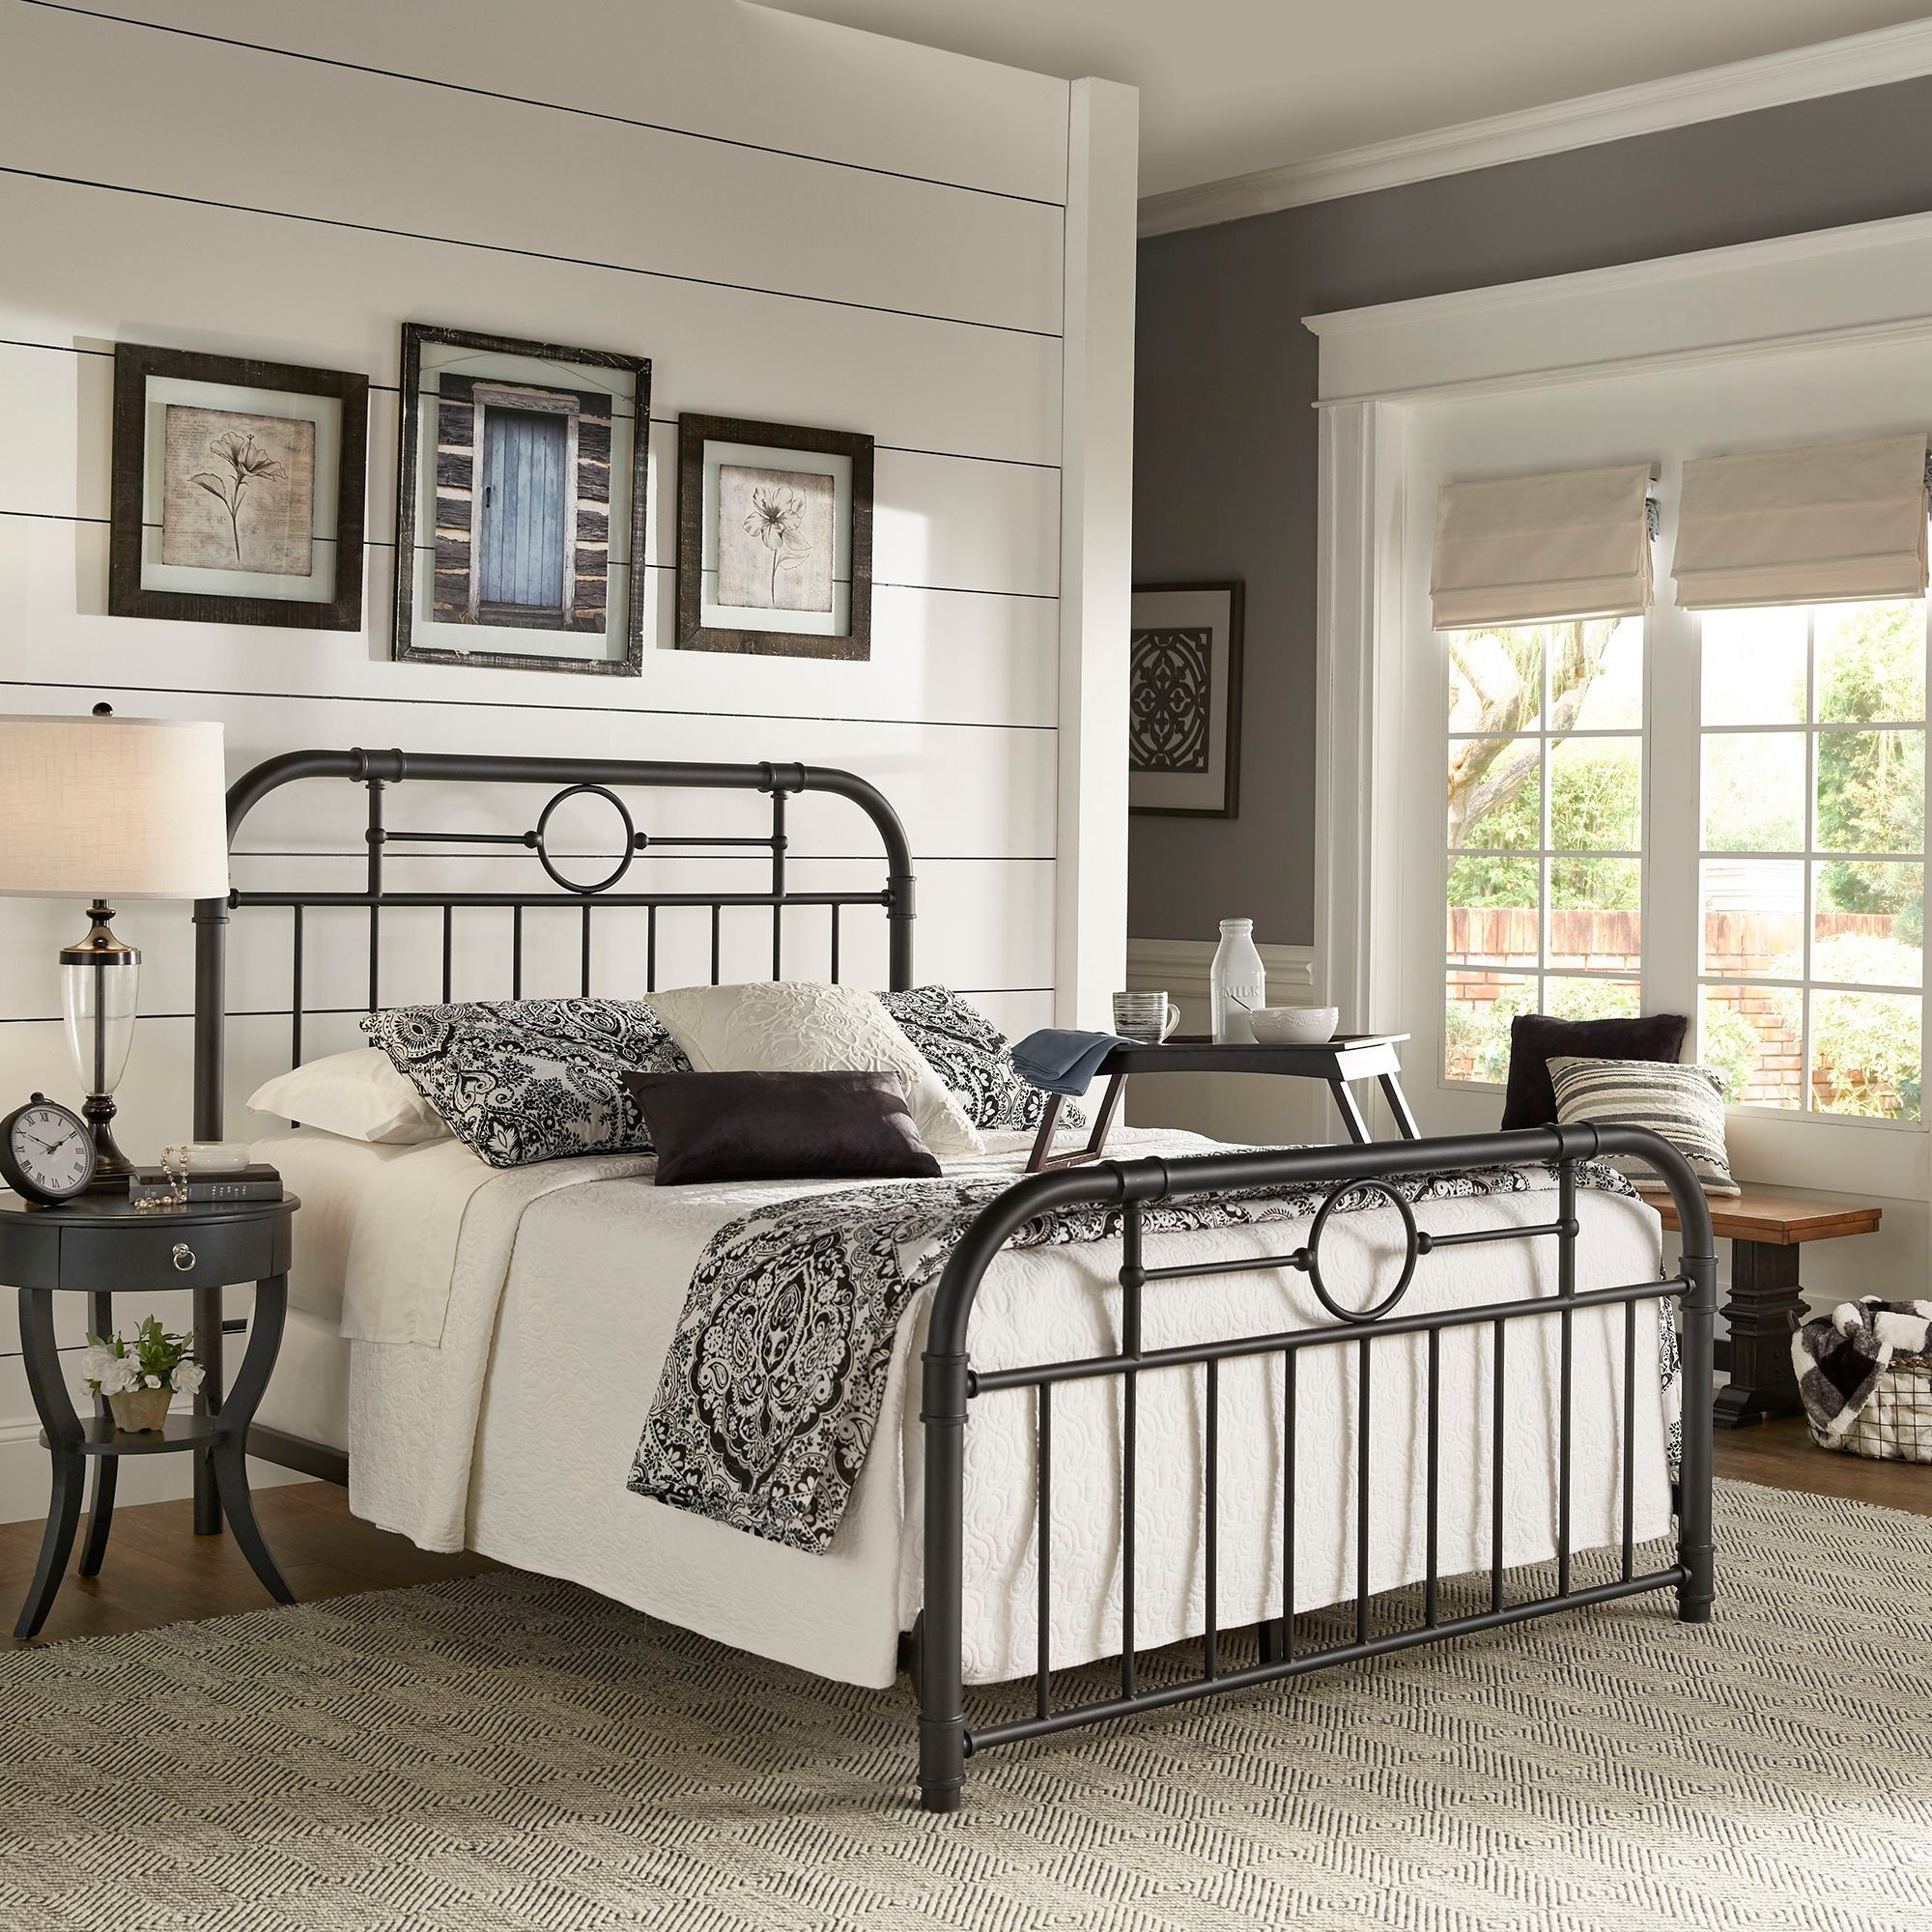 Kendal Black Metal Bed By Inspire Q Classic On Sale Overstock 28977792